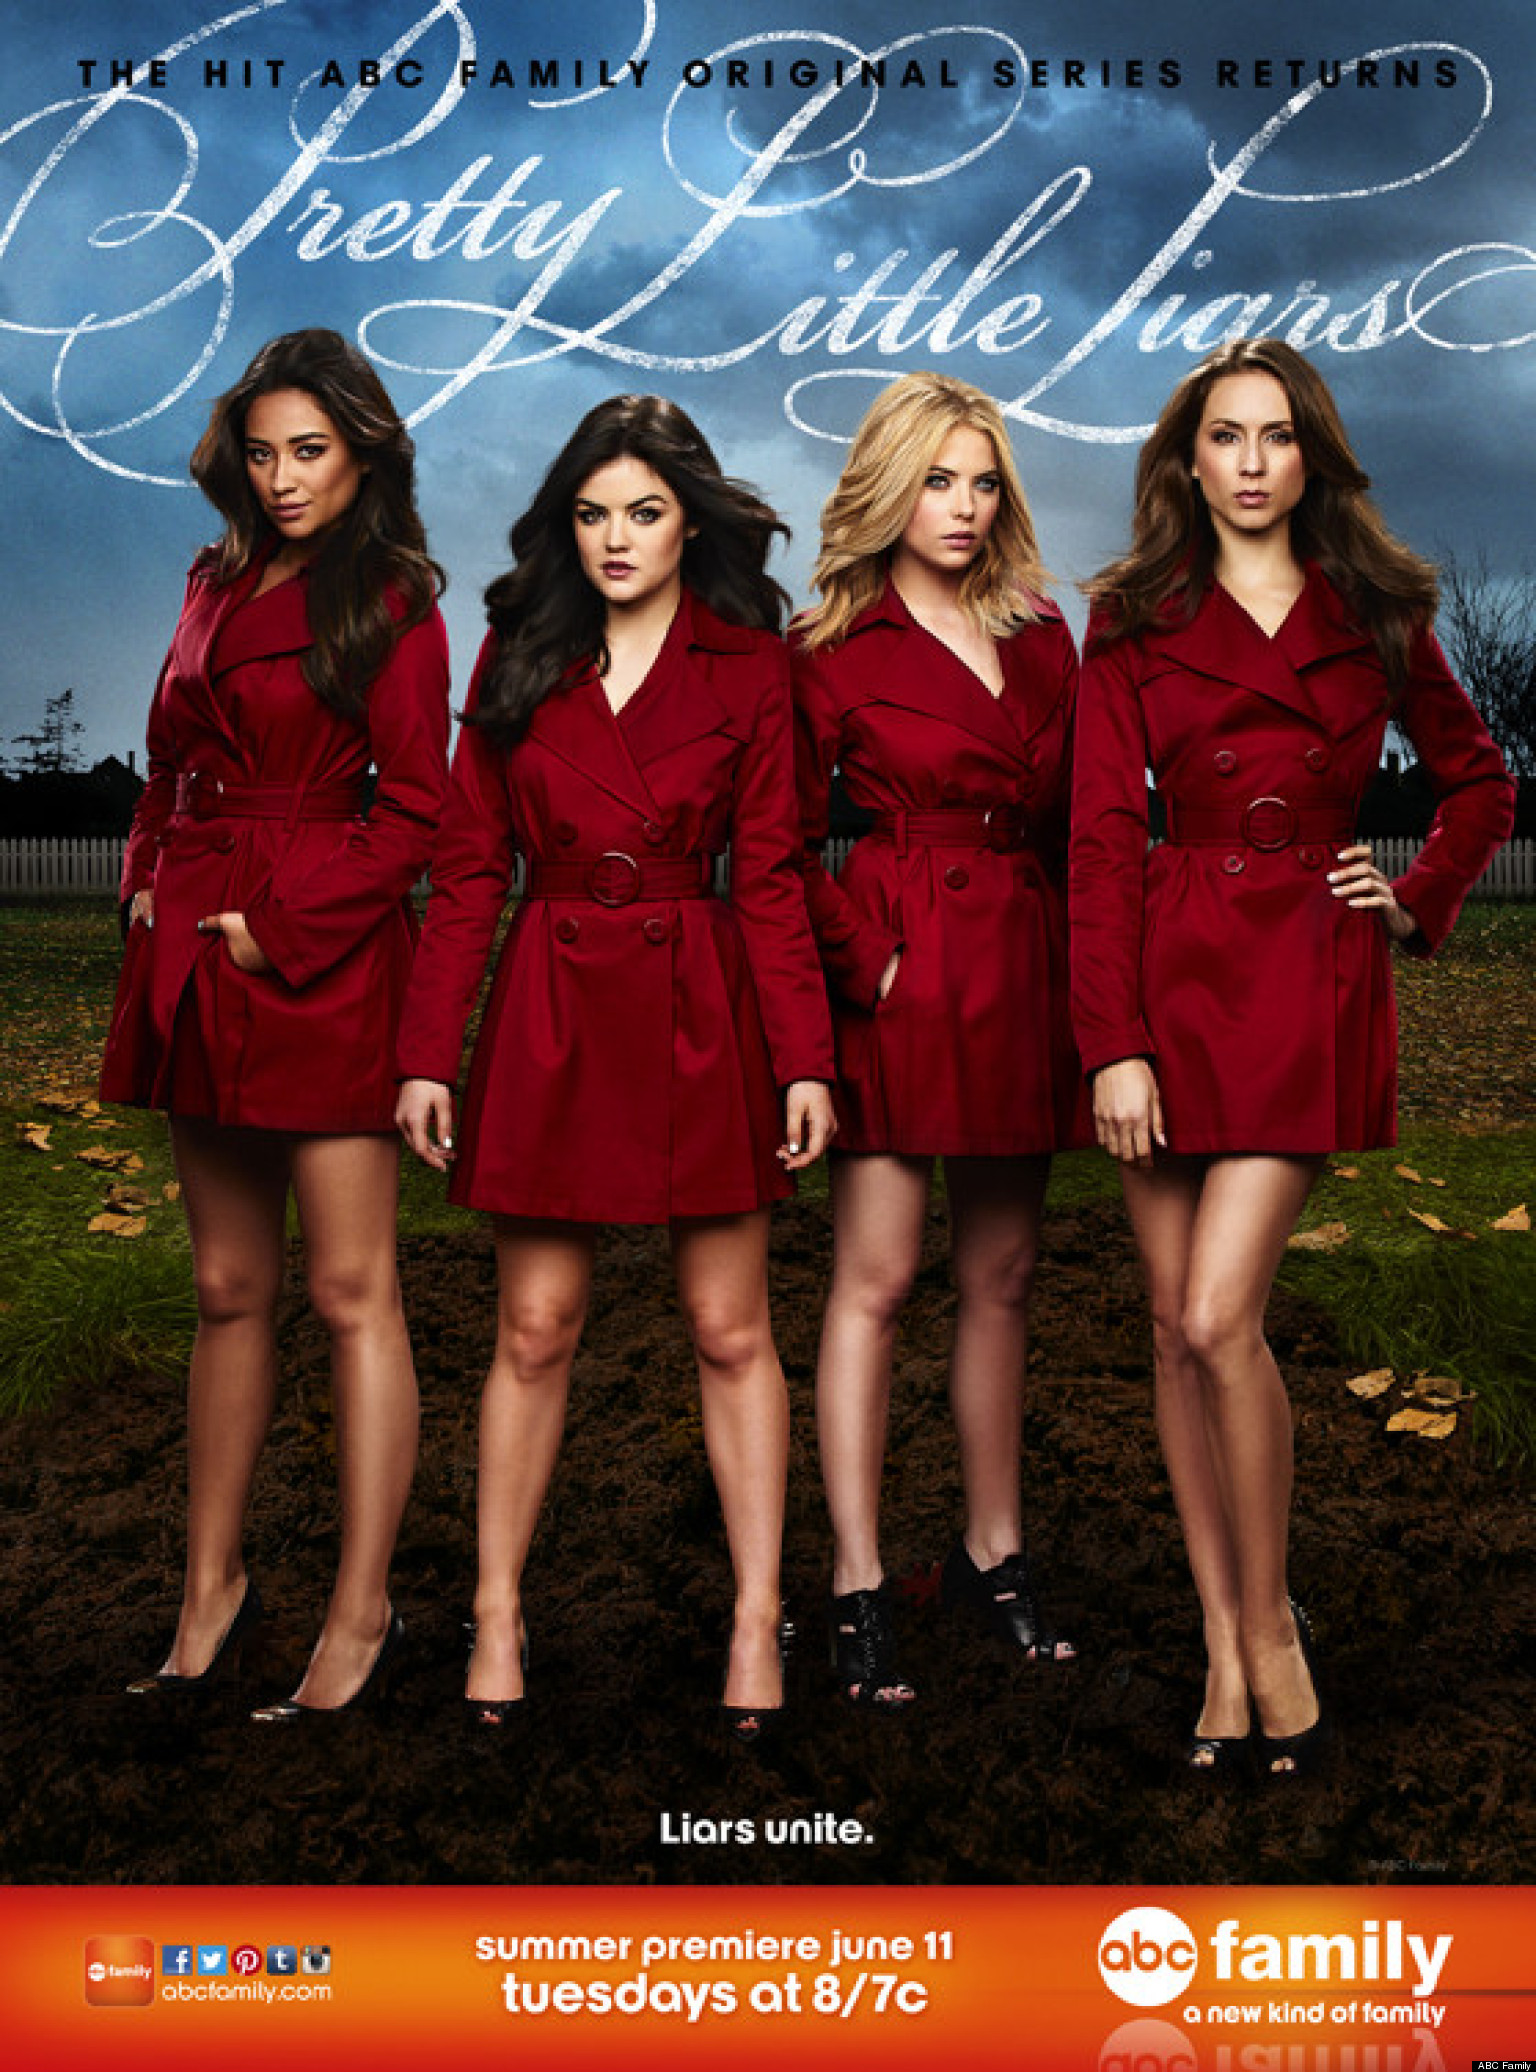 Pretty little liars season 4 facebook